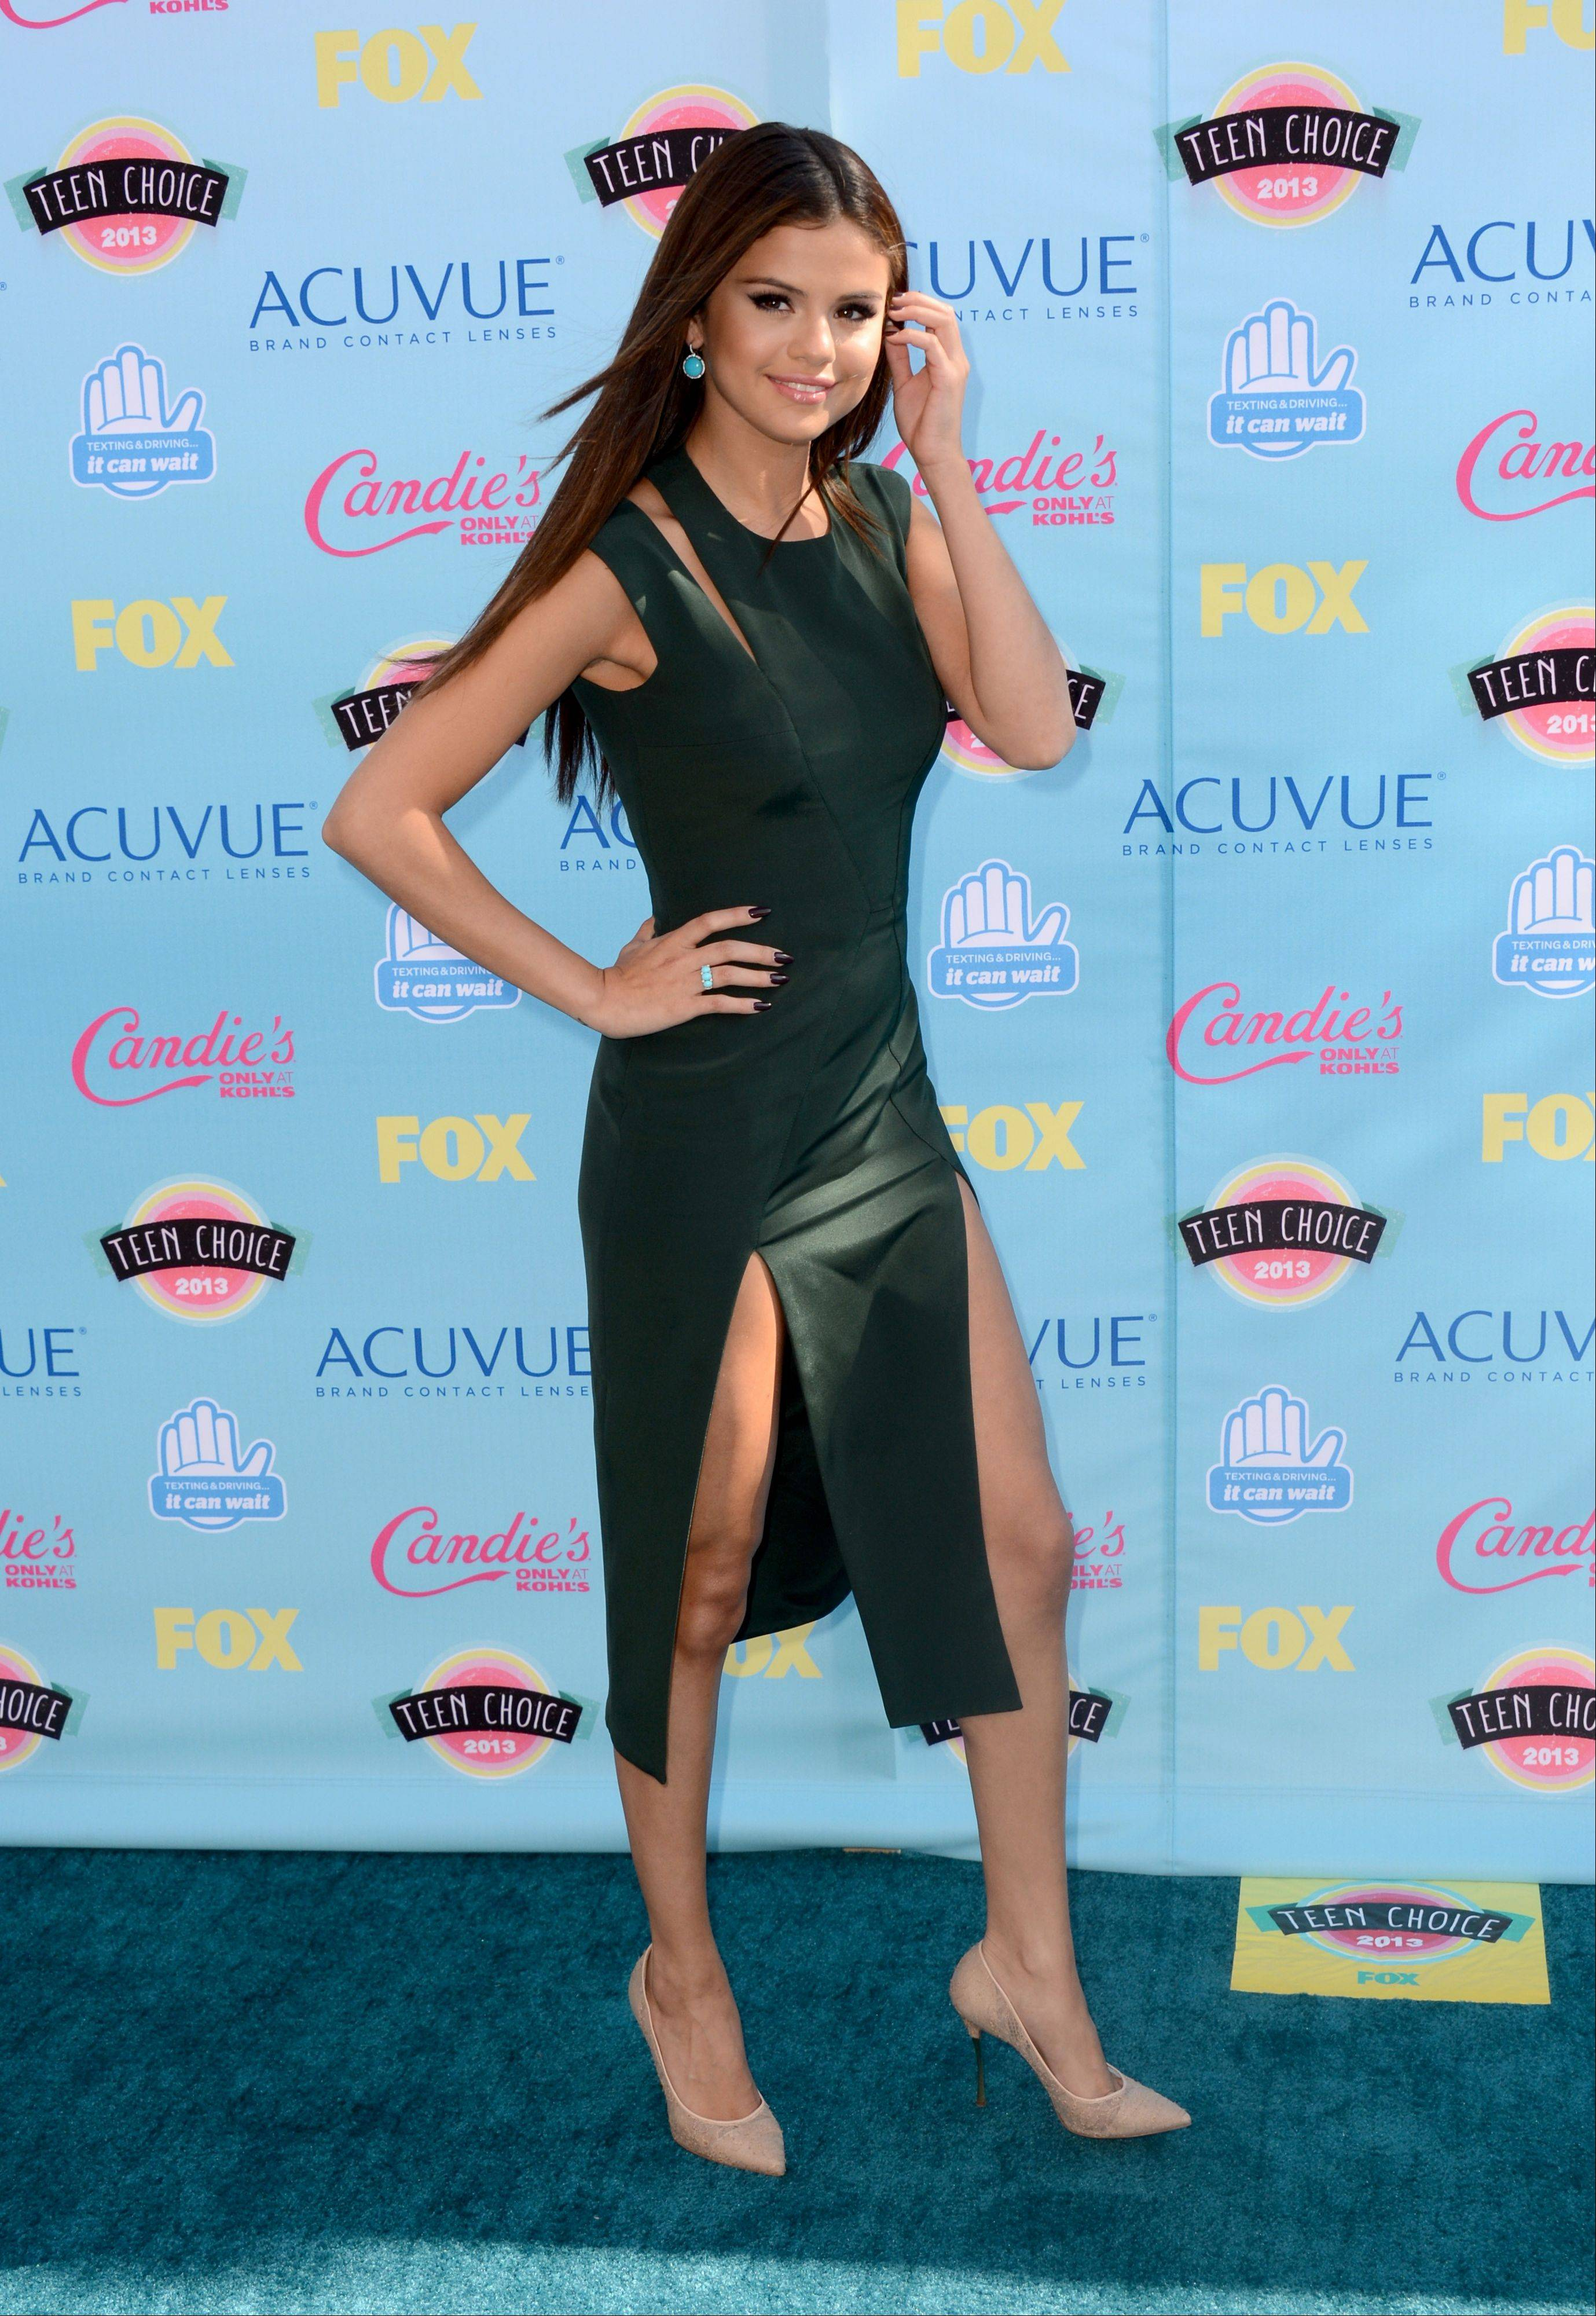 Actress, singer and Teen Choice Award nominee Selena Gomez arrives at the Teen Choice Awards at the Gibson Amphitheater on Sunday.